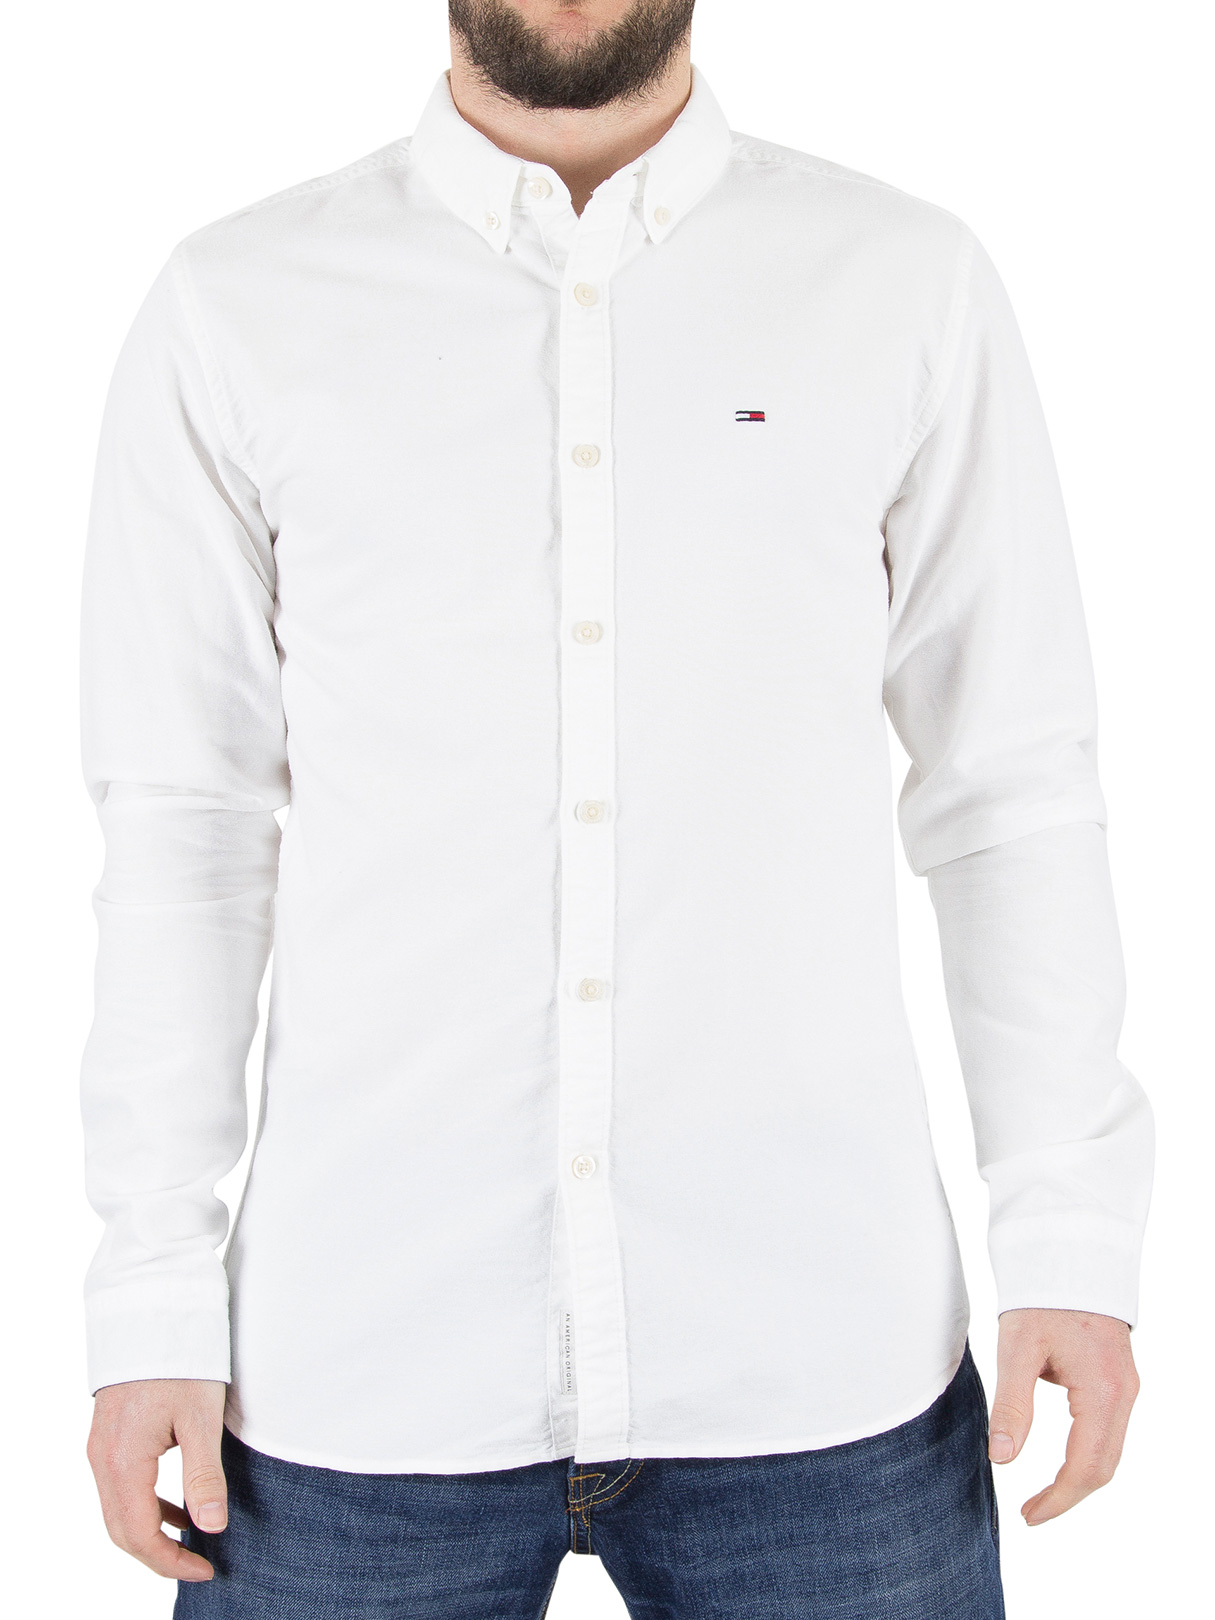 Stand-out.net Hilfiger Denim Classic White Basic Solid Logo Shirt